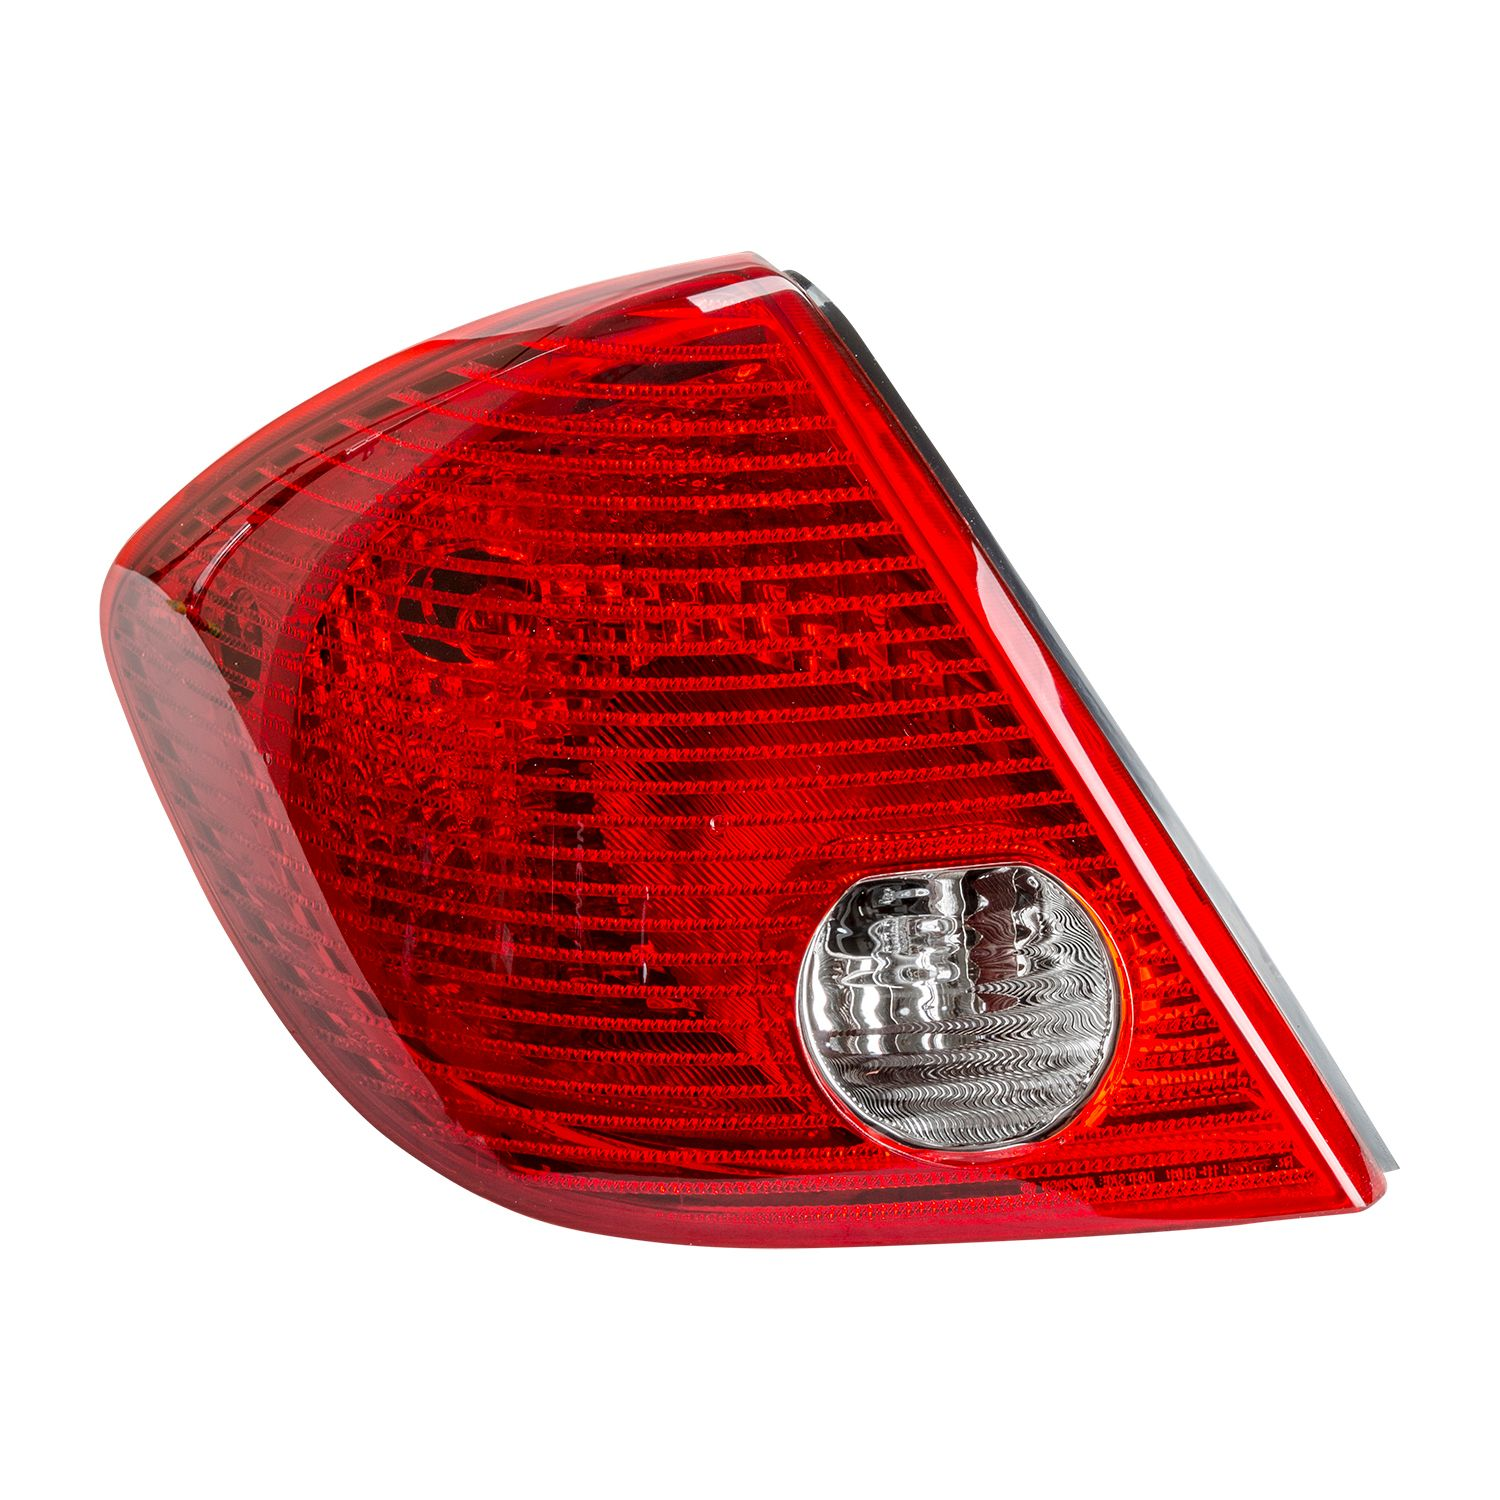 Right for 2000-2004 Nissan Frontier Rear Tail Light Lamp Assembly Housing // Lens // Cover Side 26554-7B425 NI2819103 Replacement 2001 2002 2003 Passenger Go-Parts